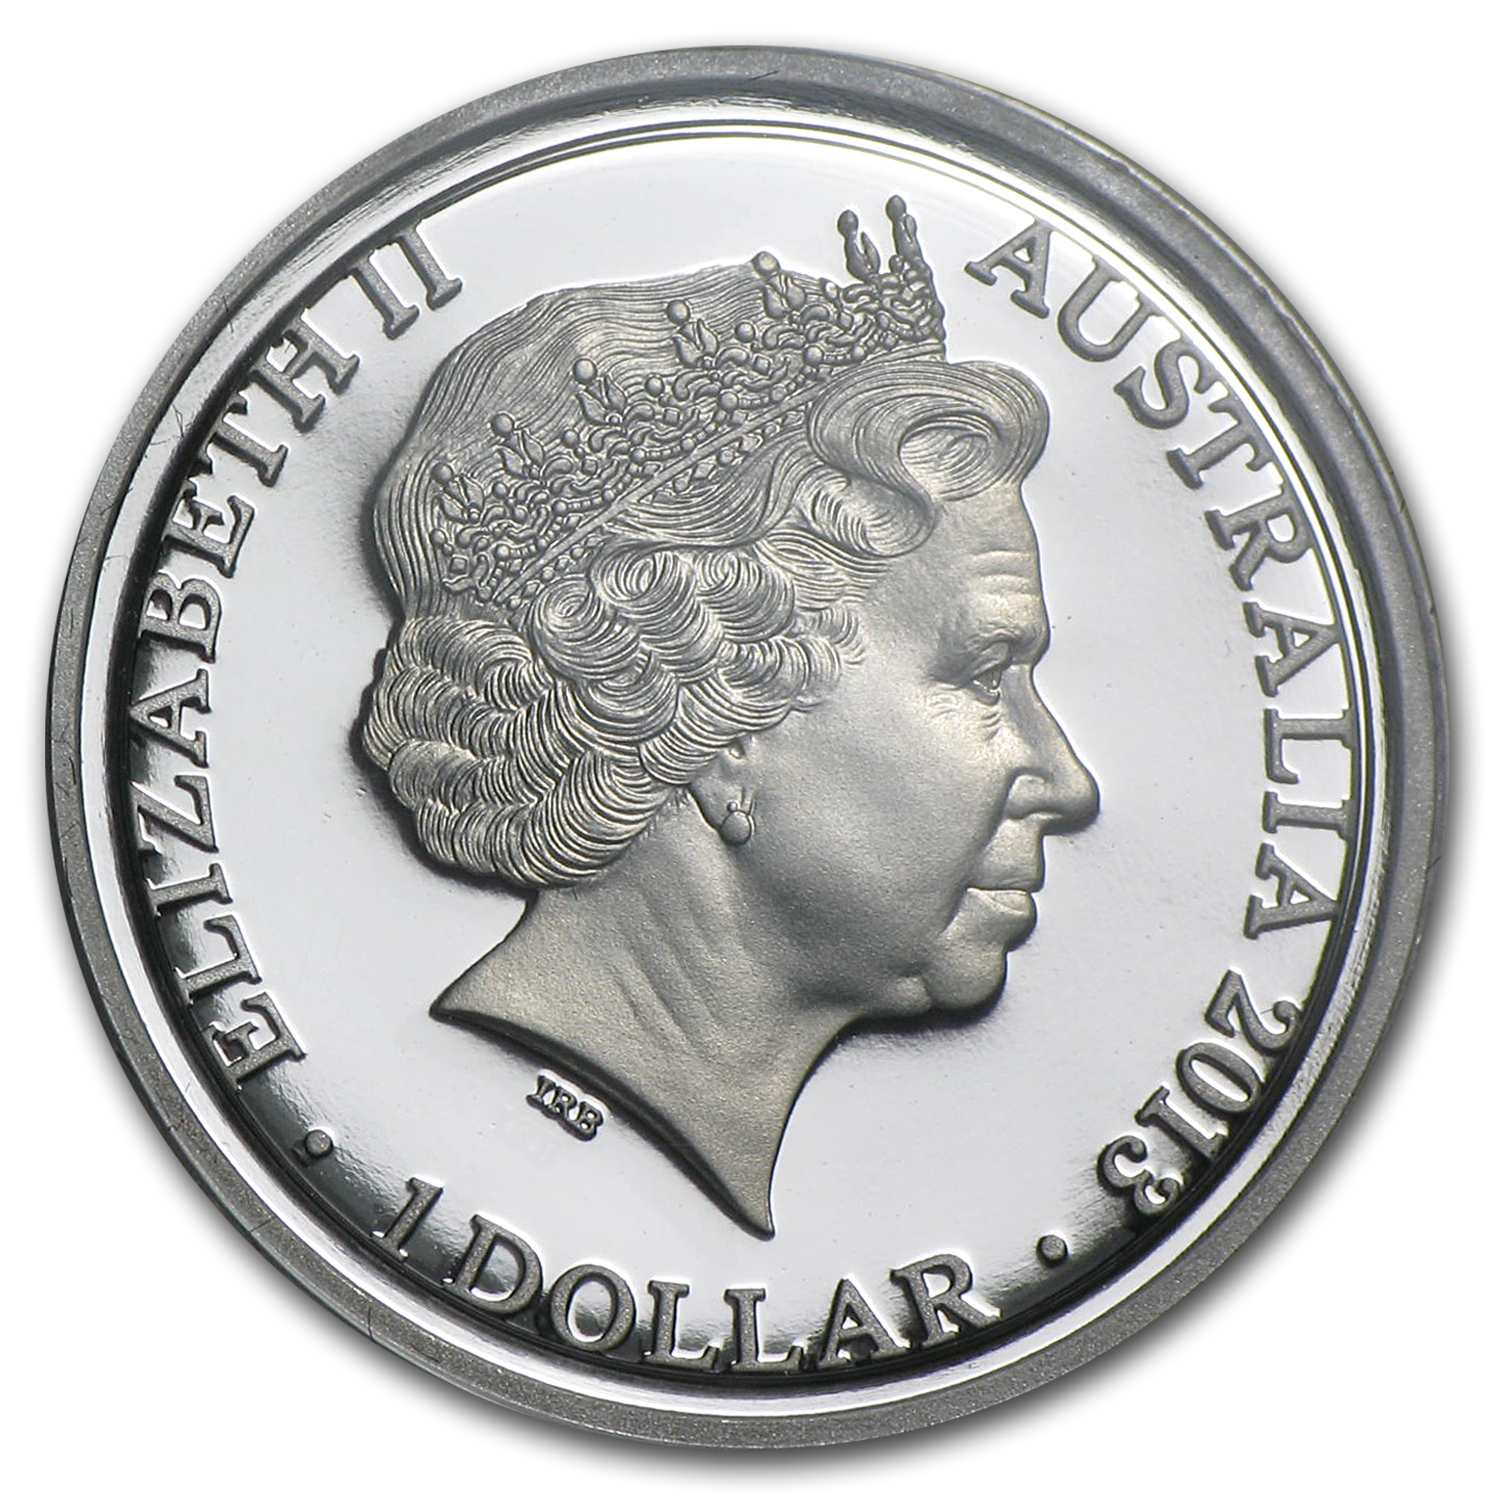 Royal Australian Mint 2013 Silver $1 Kangaroo at Sunset